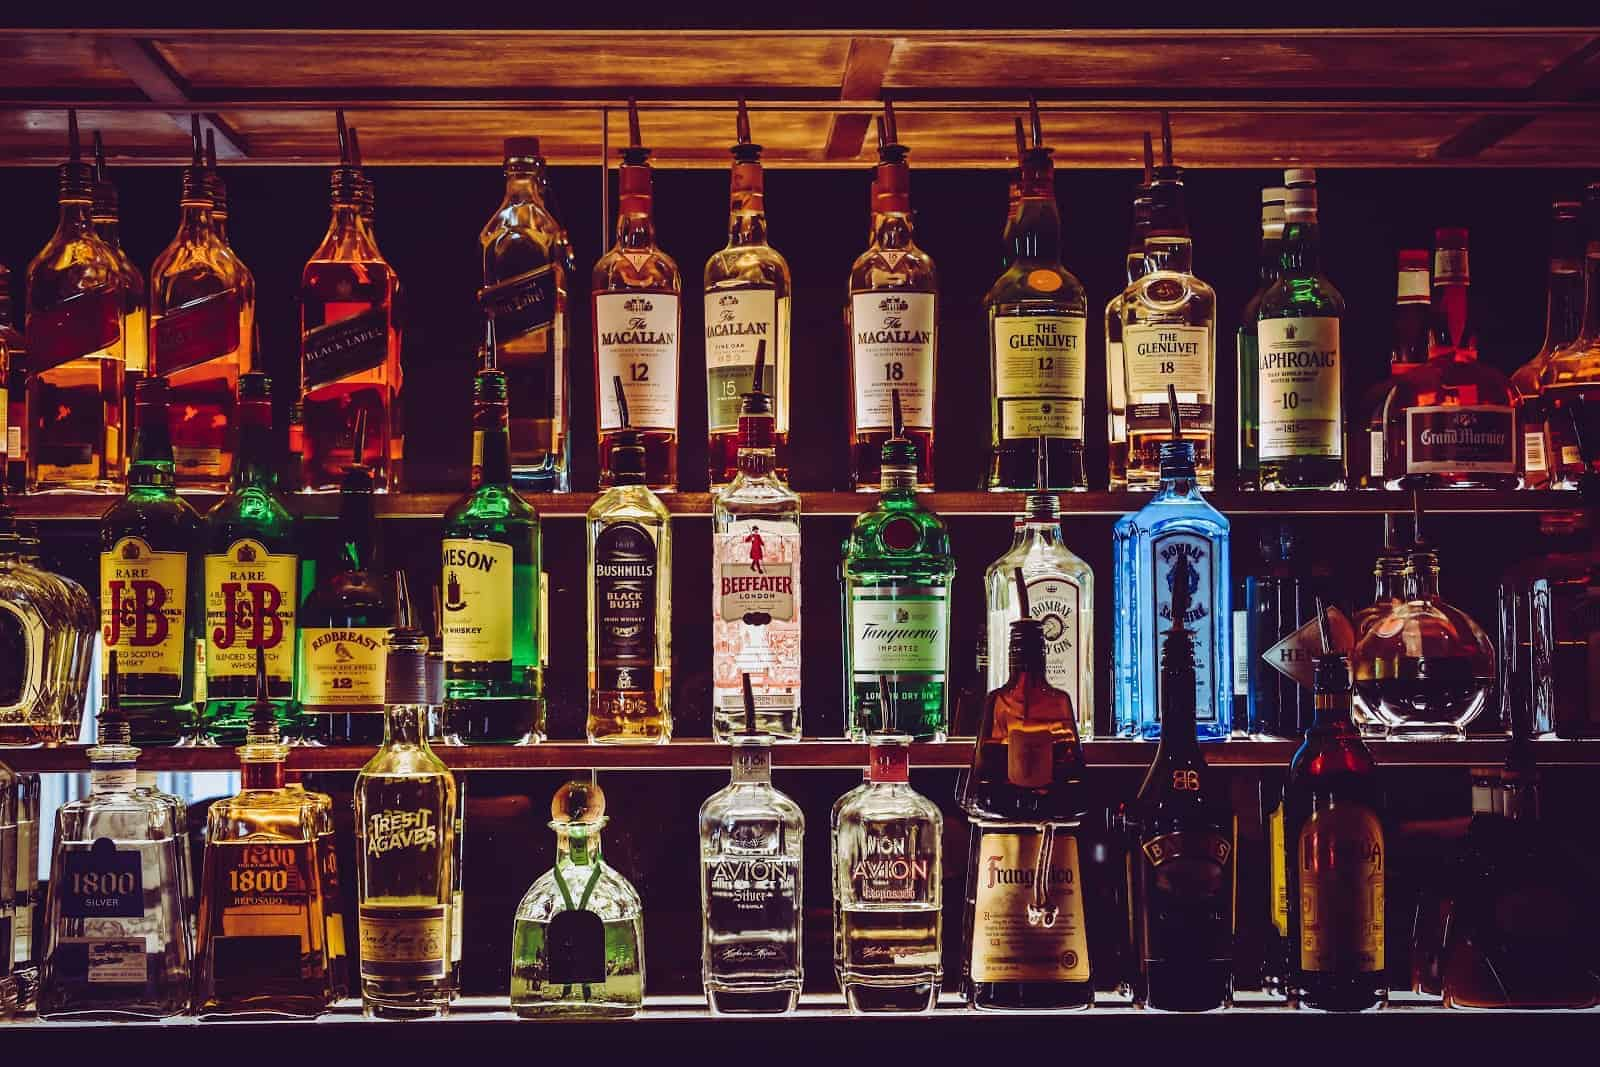 Wall of alcohol bottles